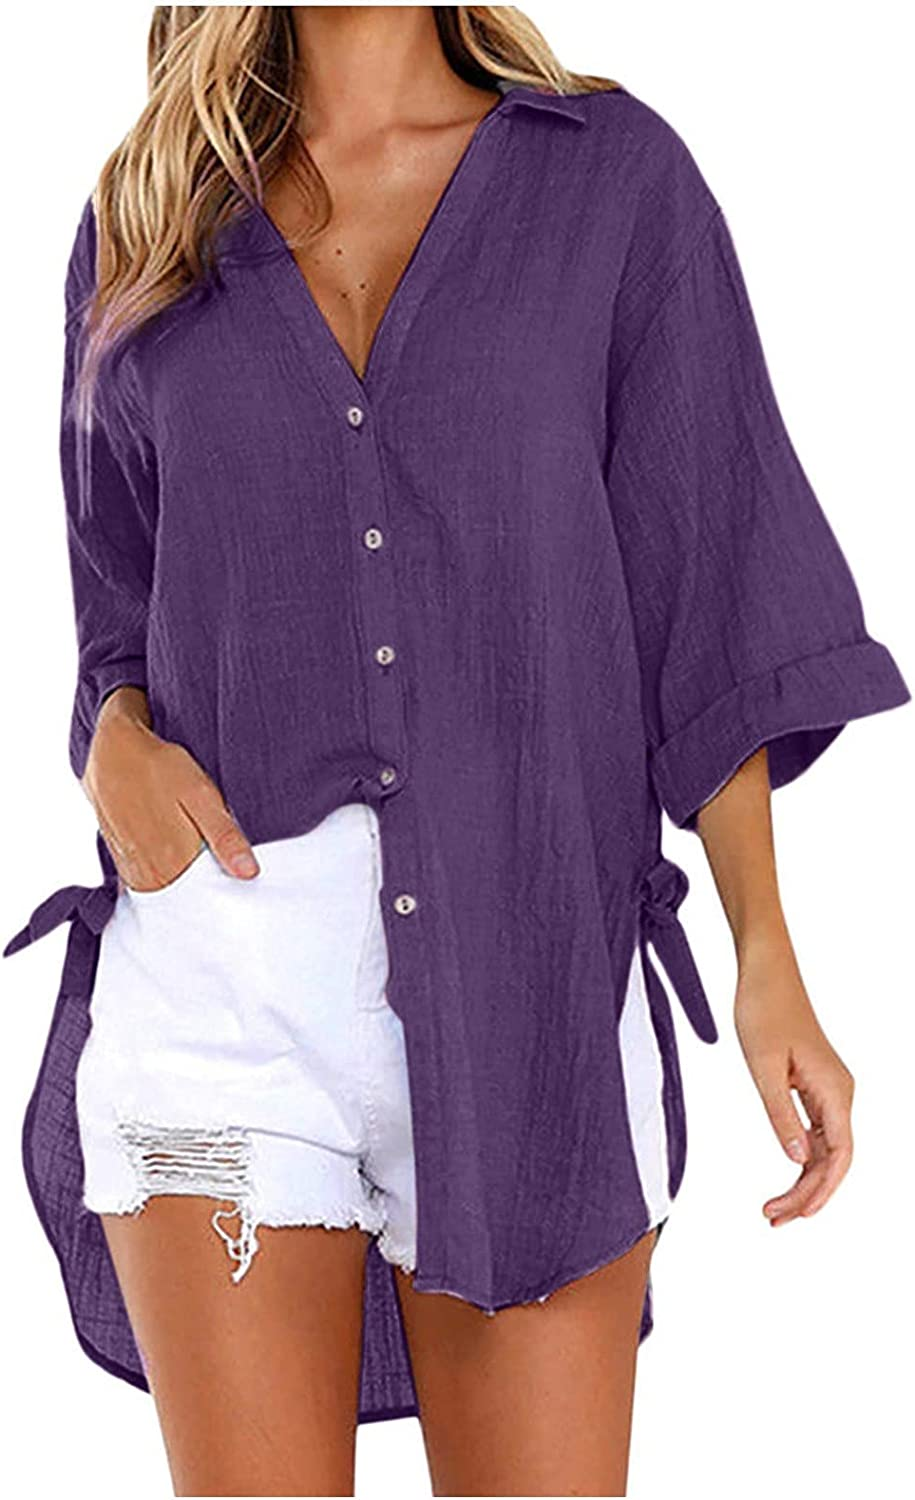 Blouses for Women Fashion Button-Up Solid Color Tops V-Neck Long Tunics Side Twist Knot Shirts Tops